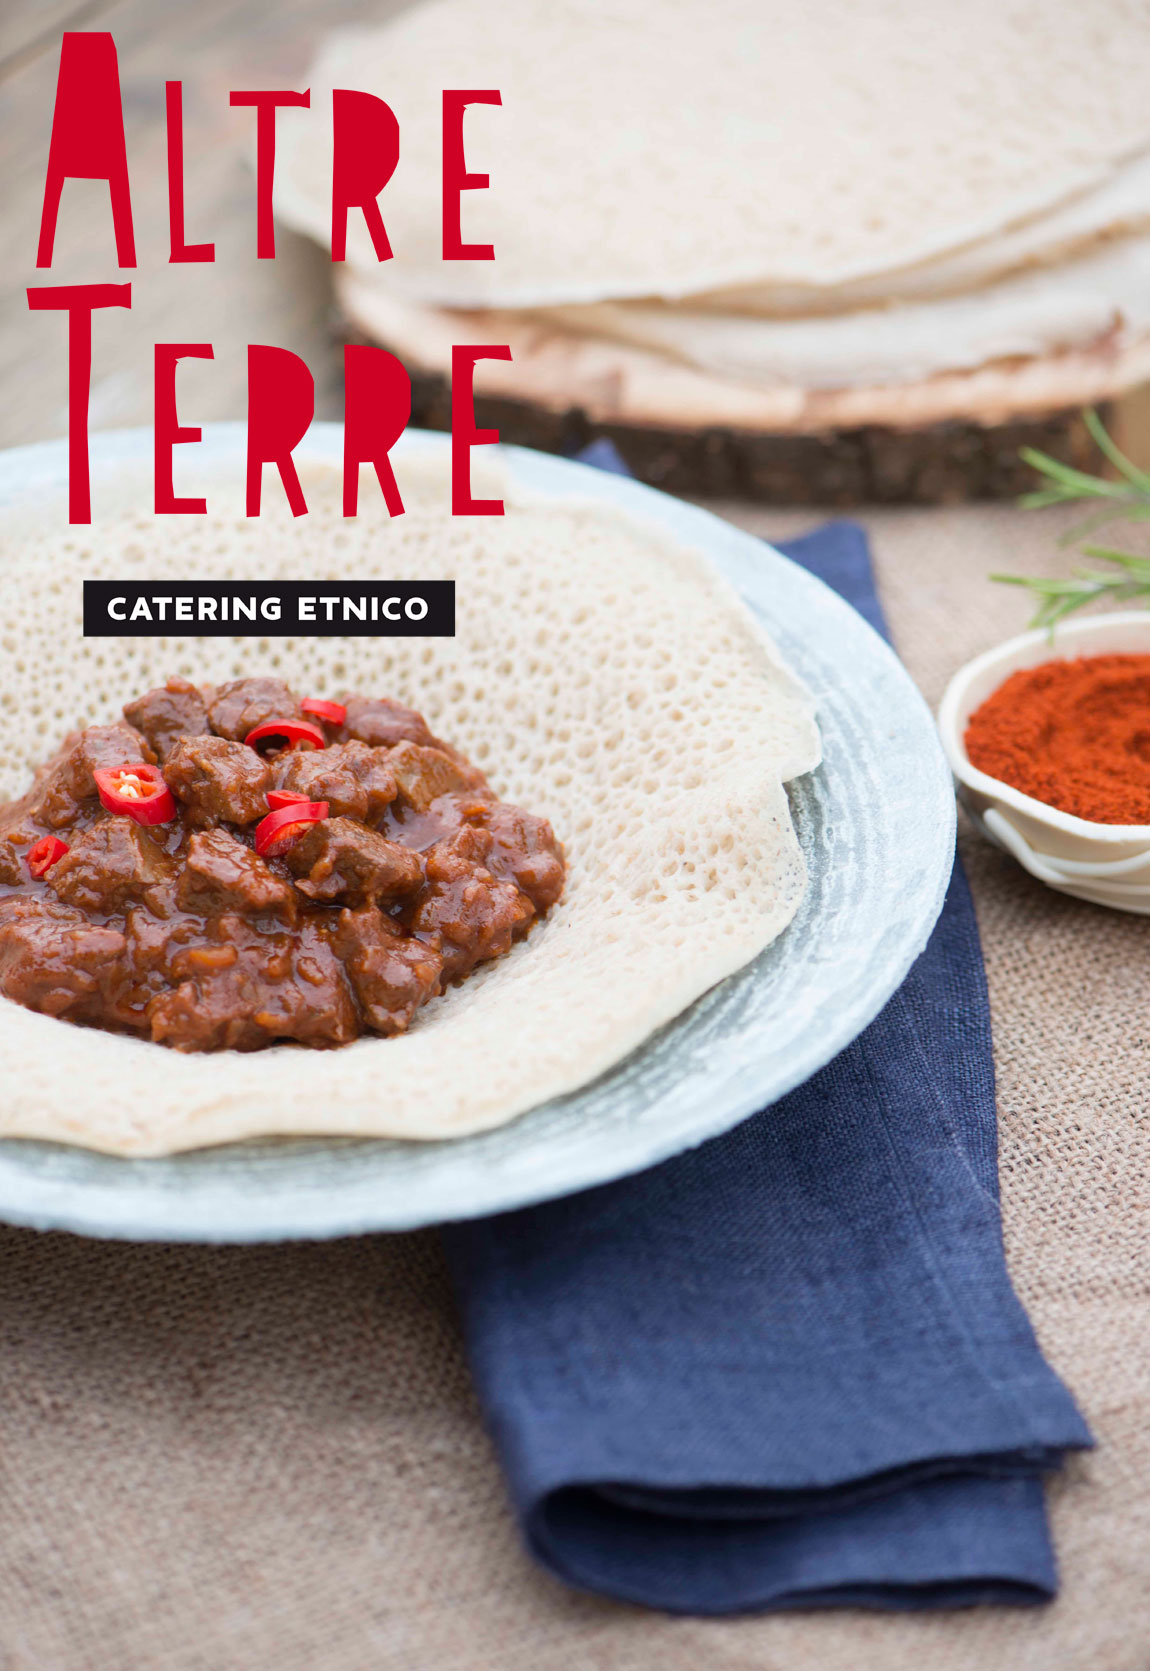 altre-terre-catering-cover